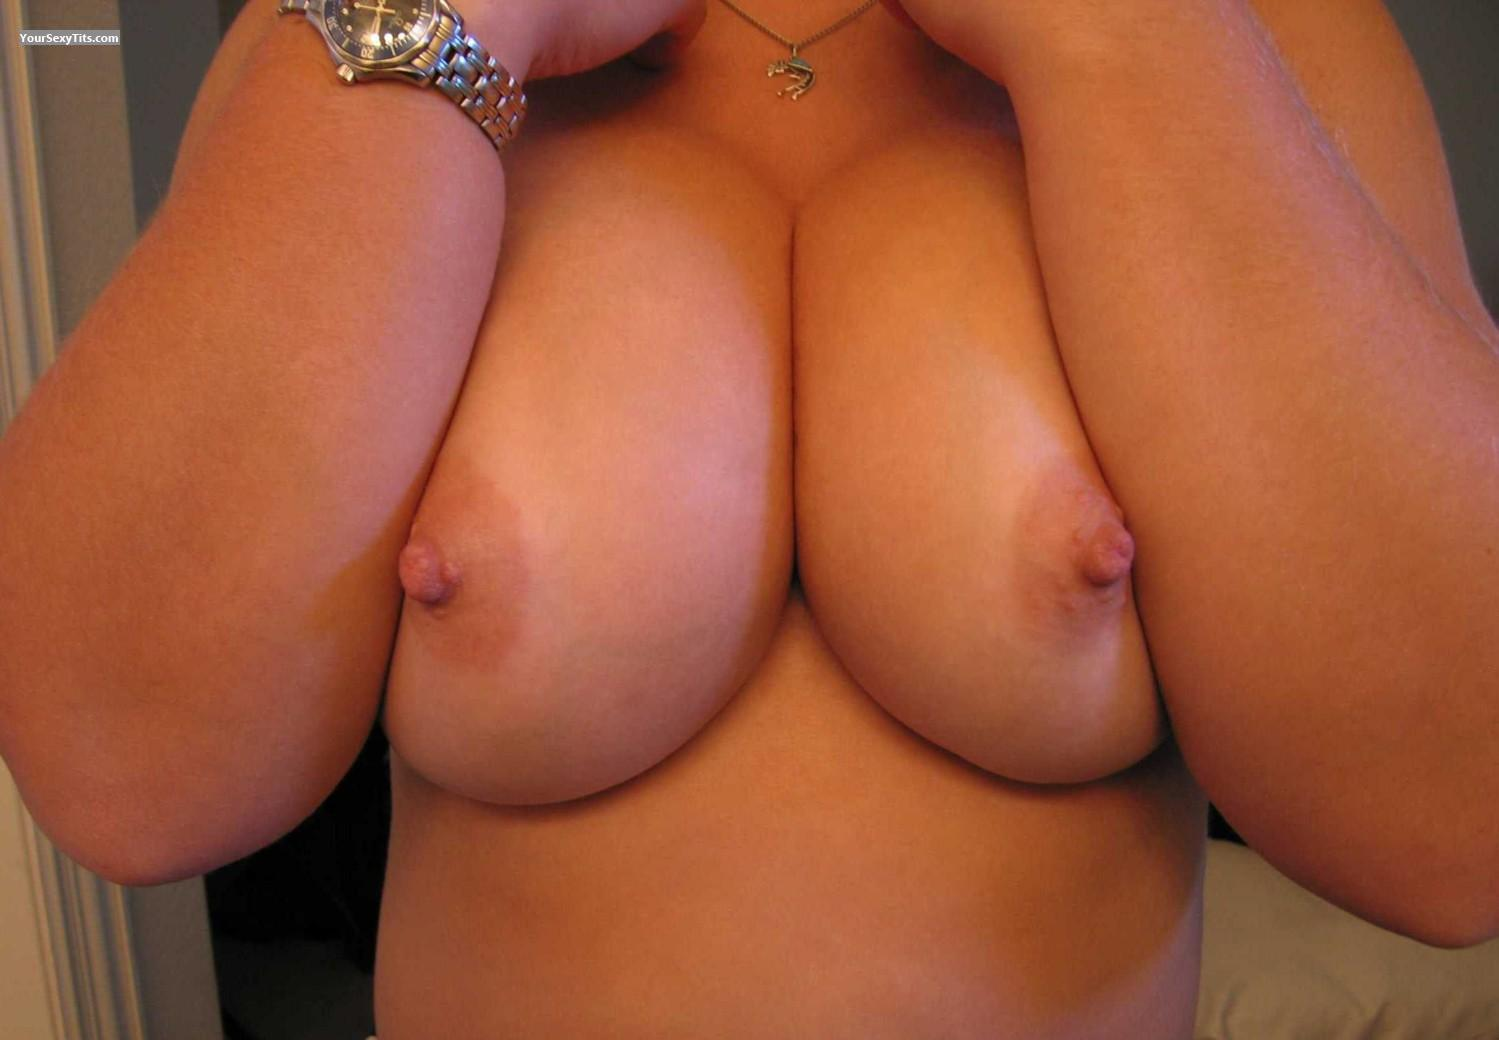 Tit Flash: Big Tits - Faans Flasher from United States